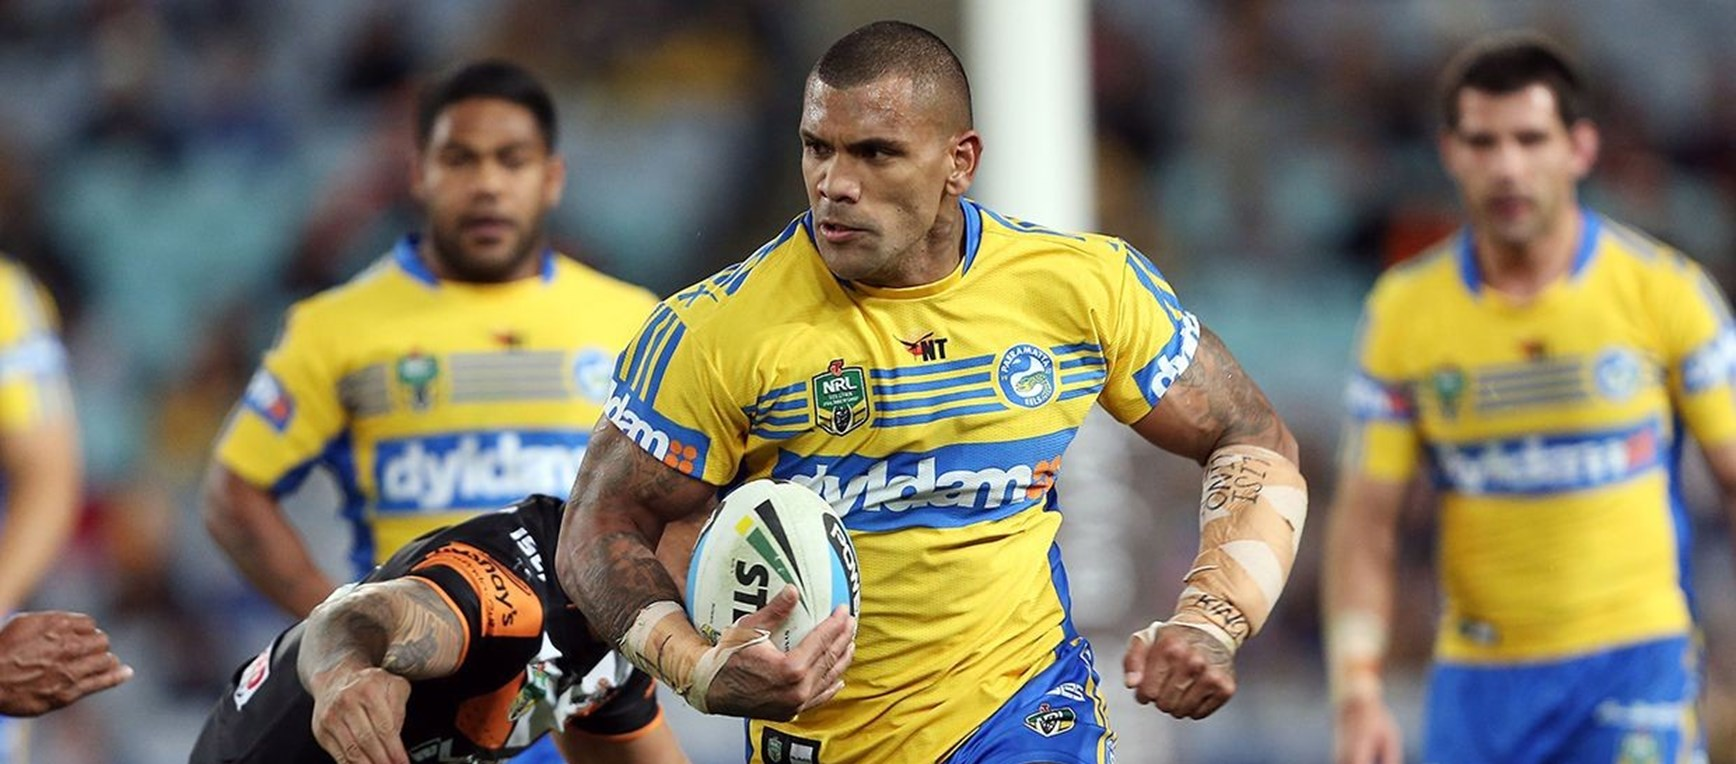 GALLERY | Eels v Wests Tigers, ANZ Stadium